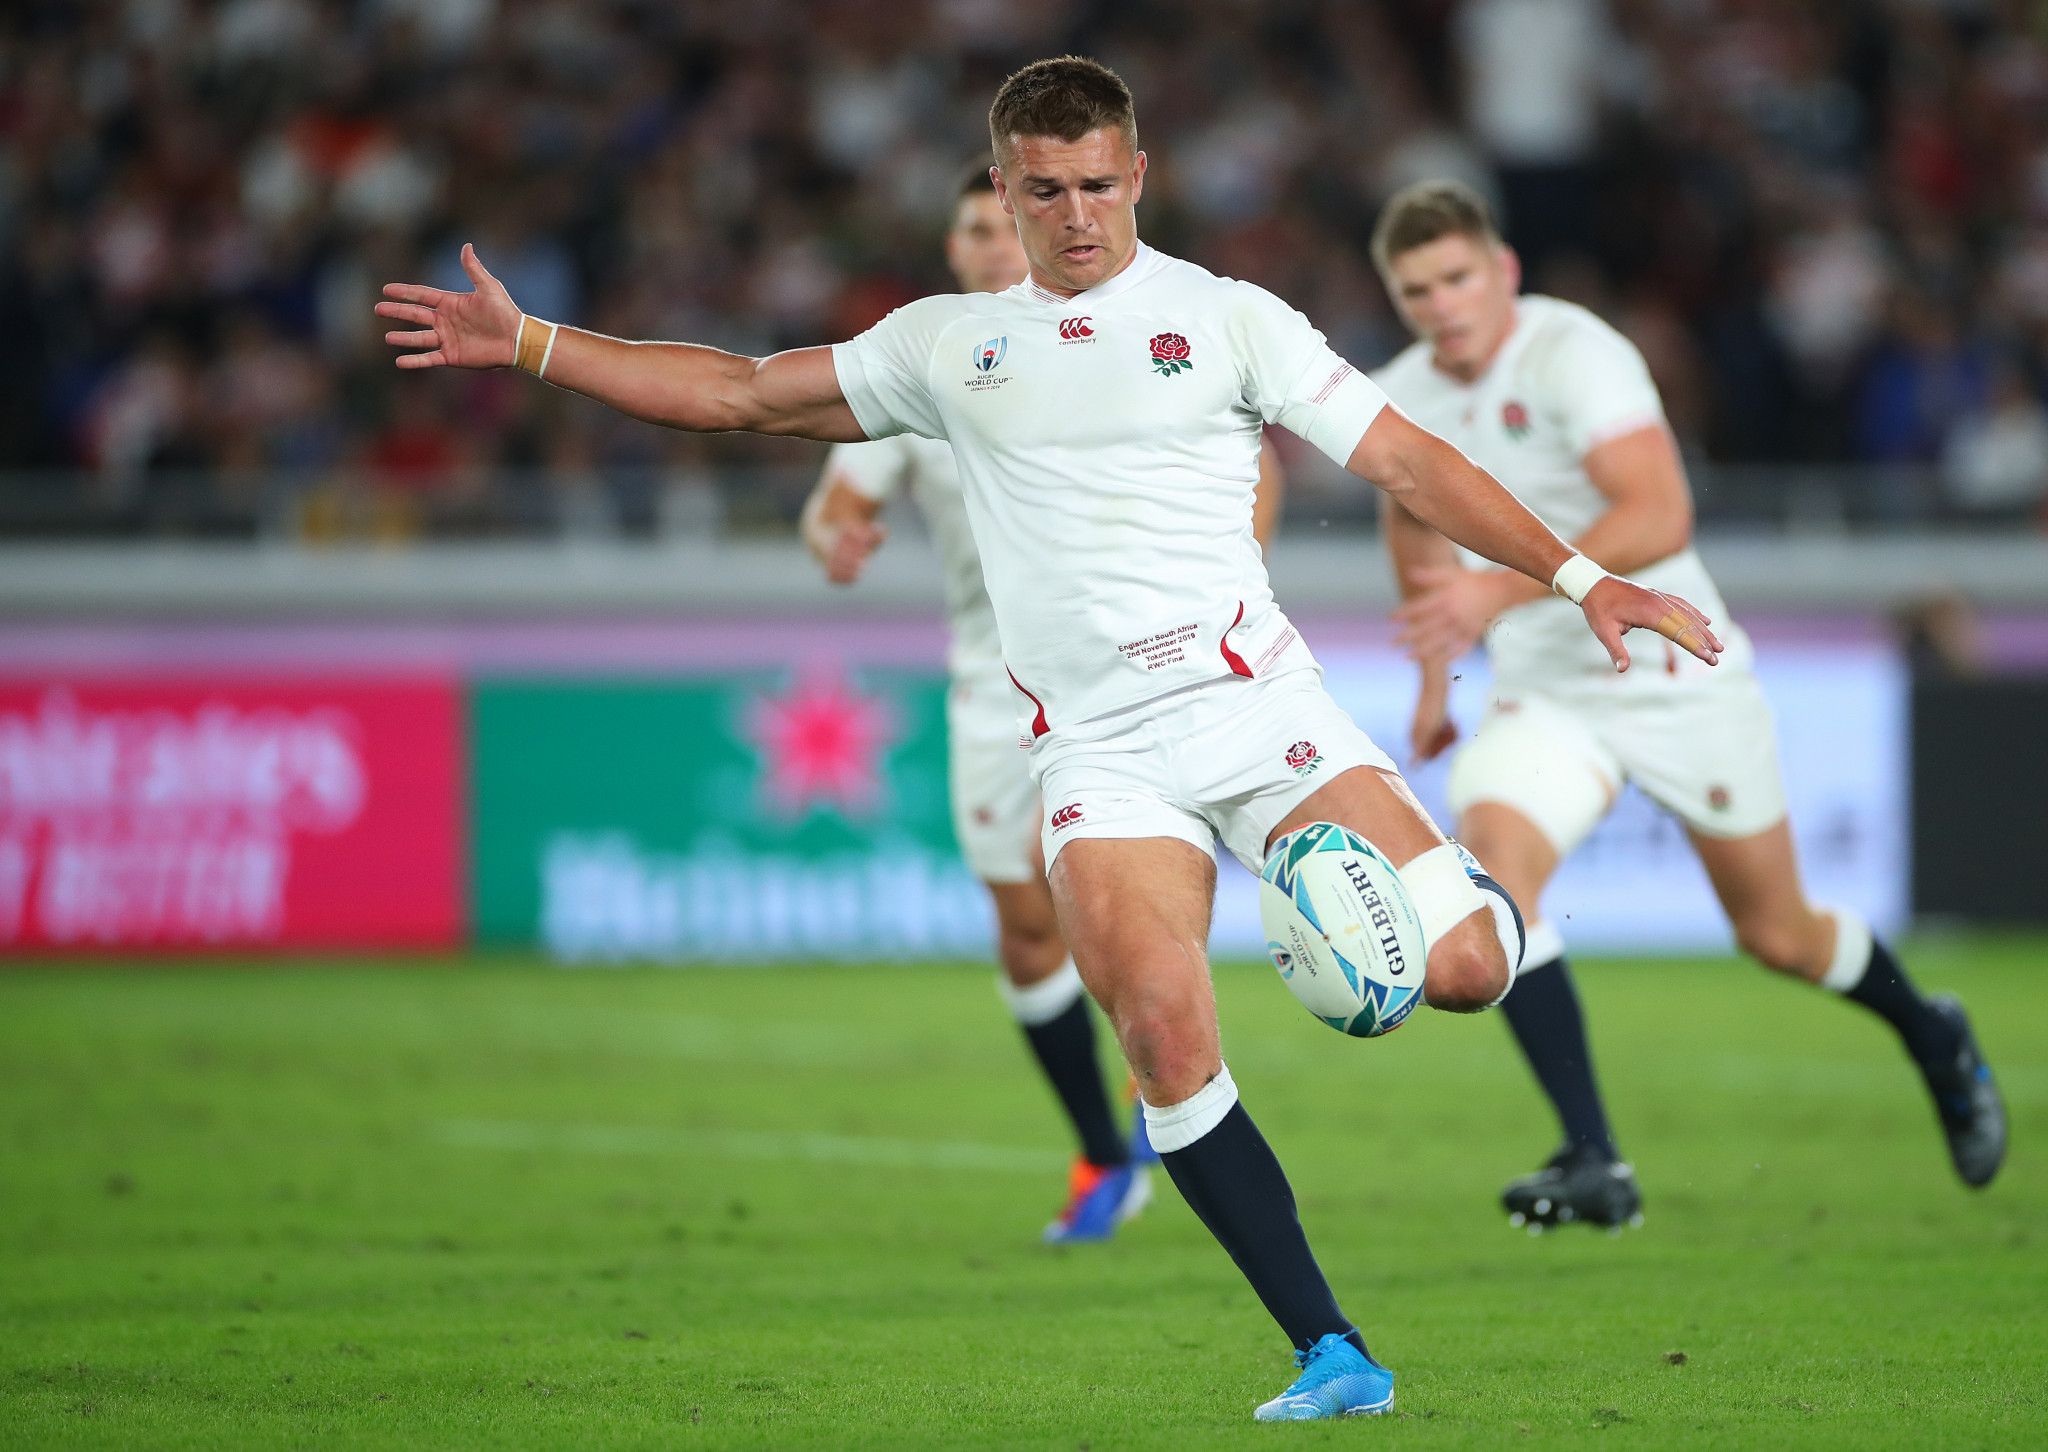 Henry Slade has refused to get vaccinated against COVID-19 ©Getty Images